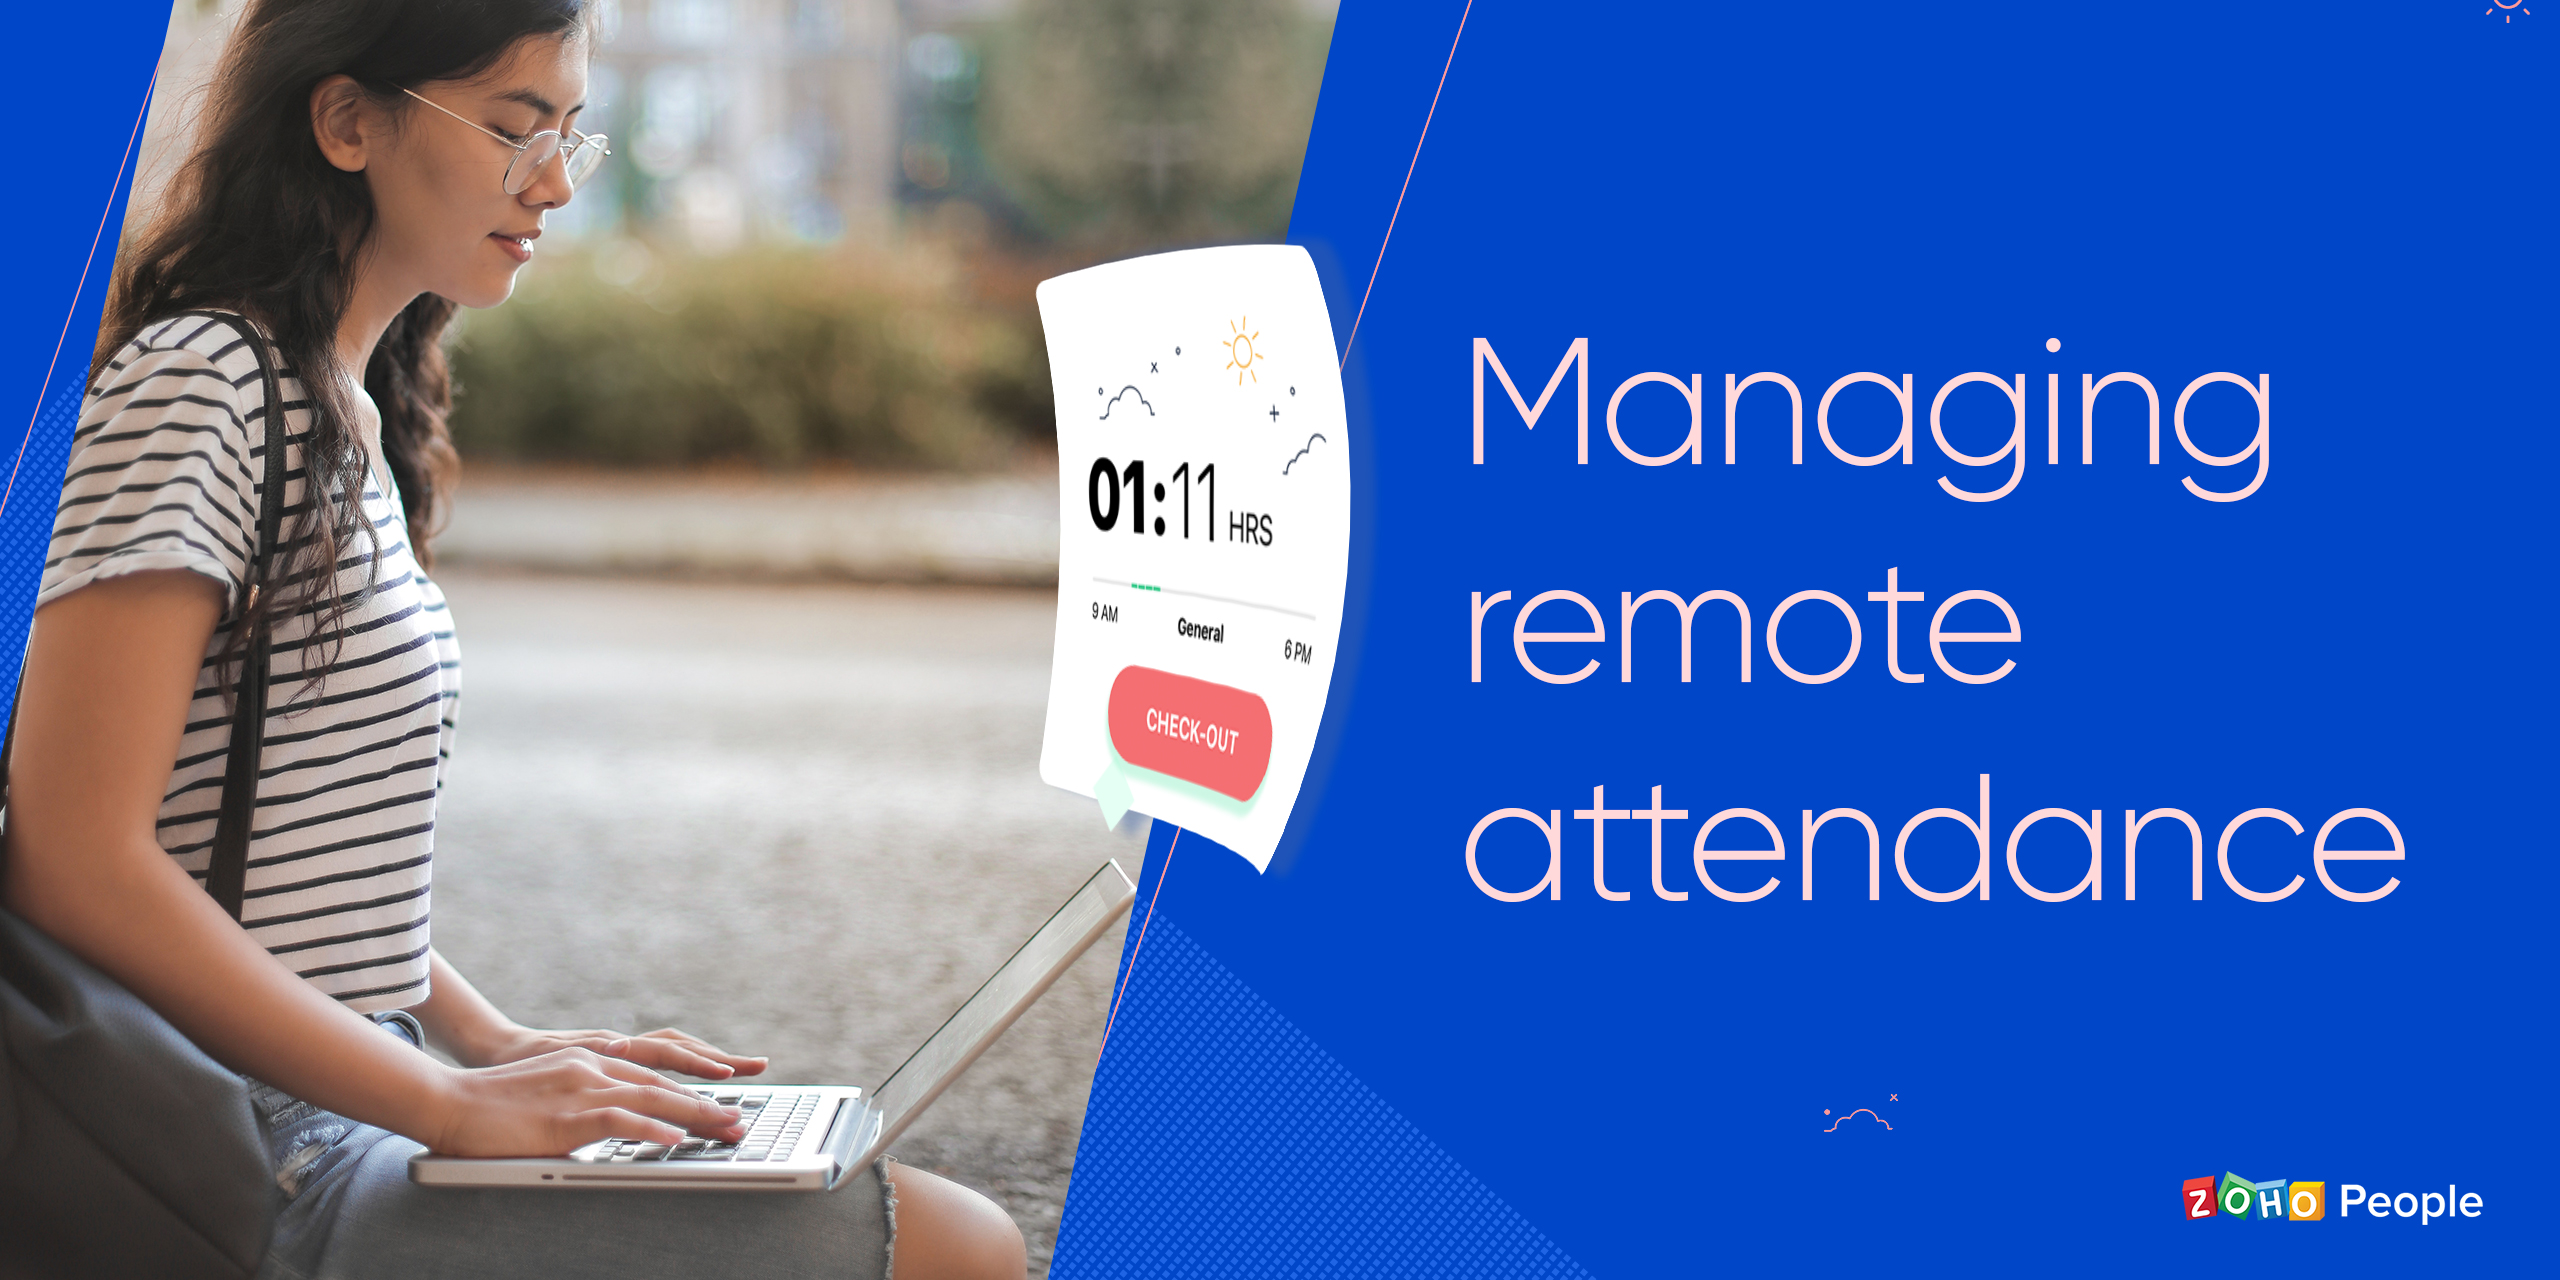 Managing remote attendance with a cloud-based attendance tracker